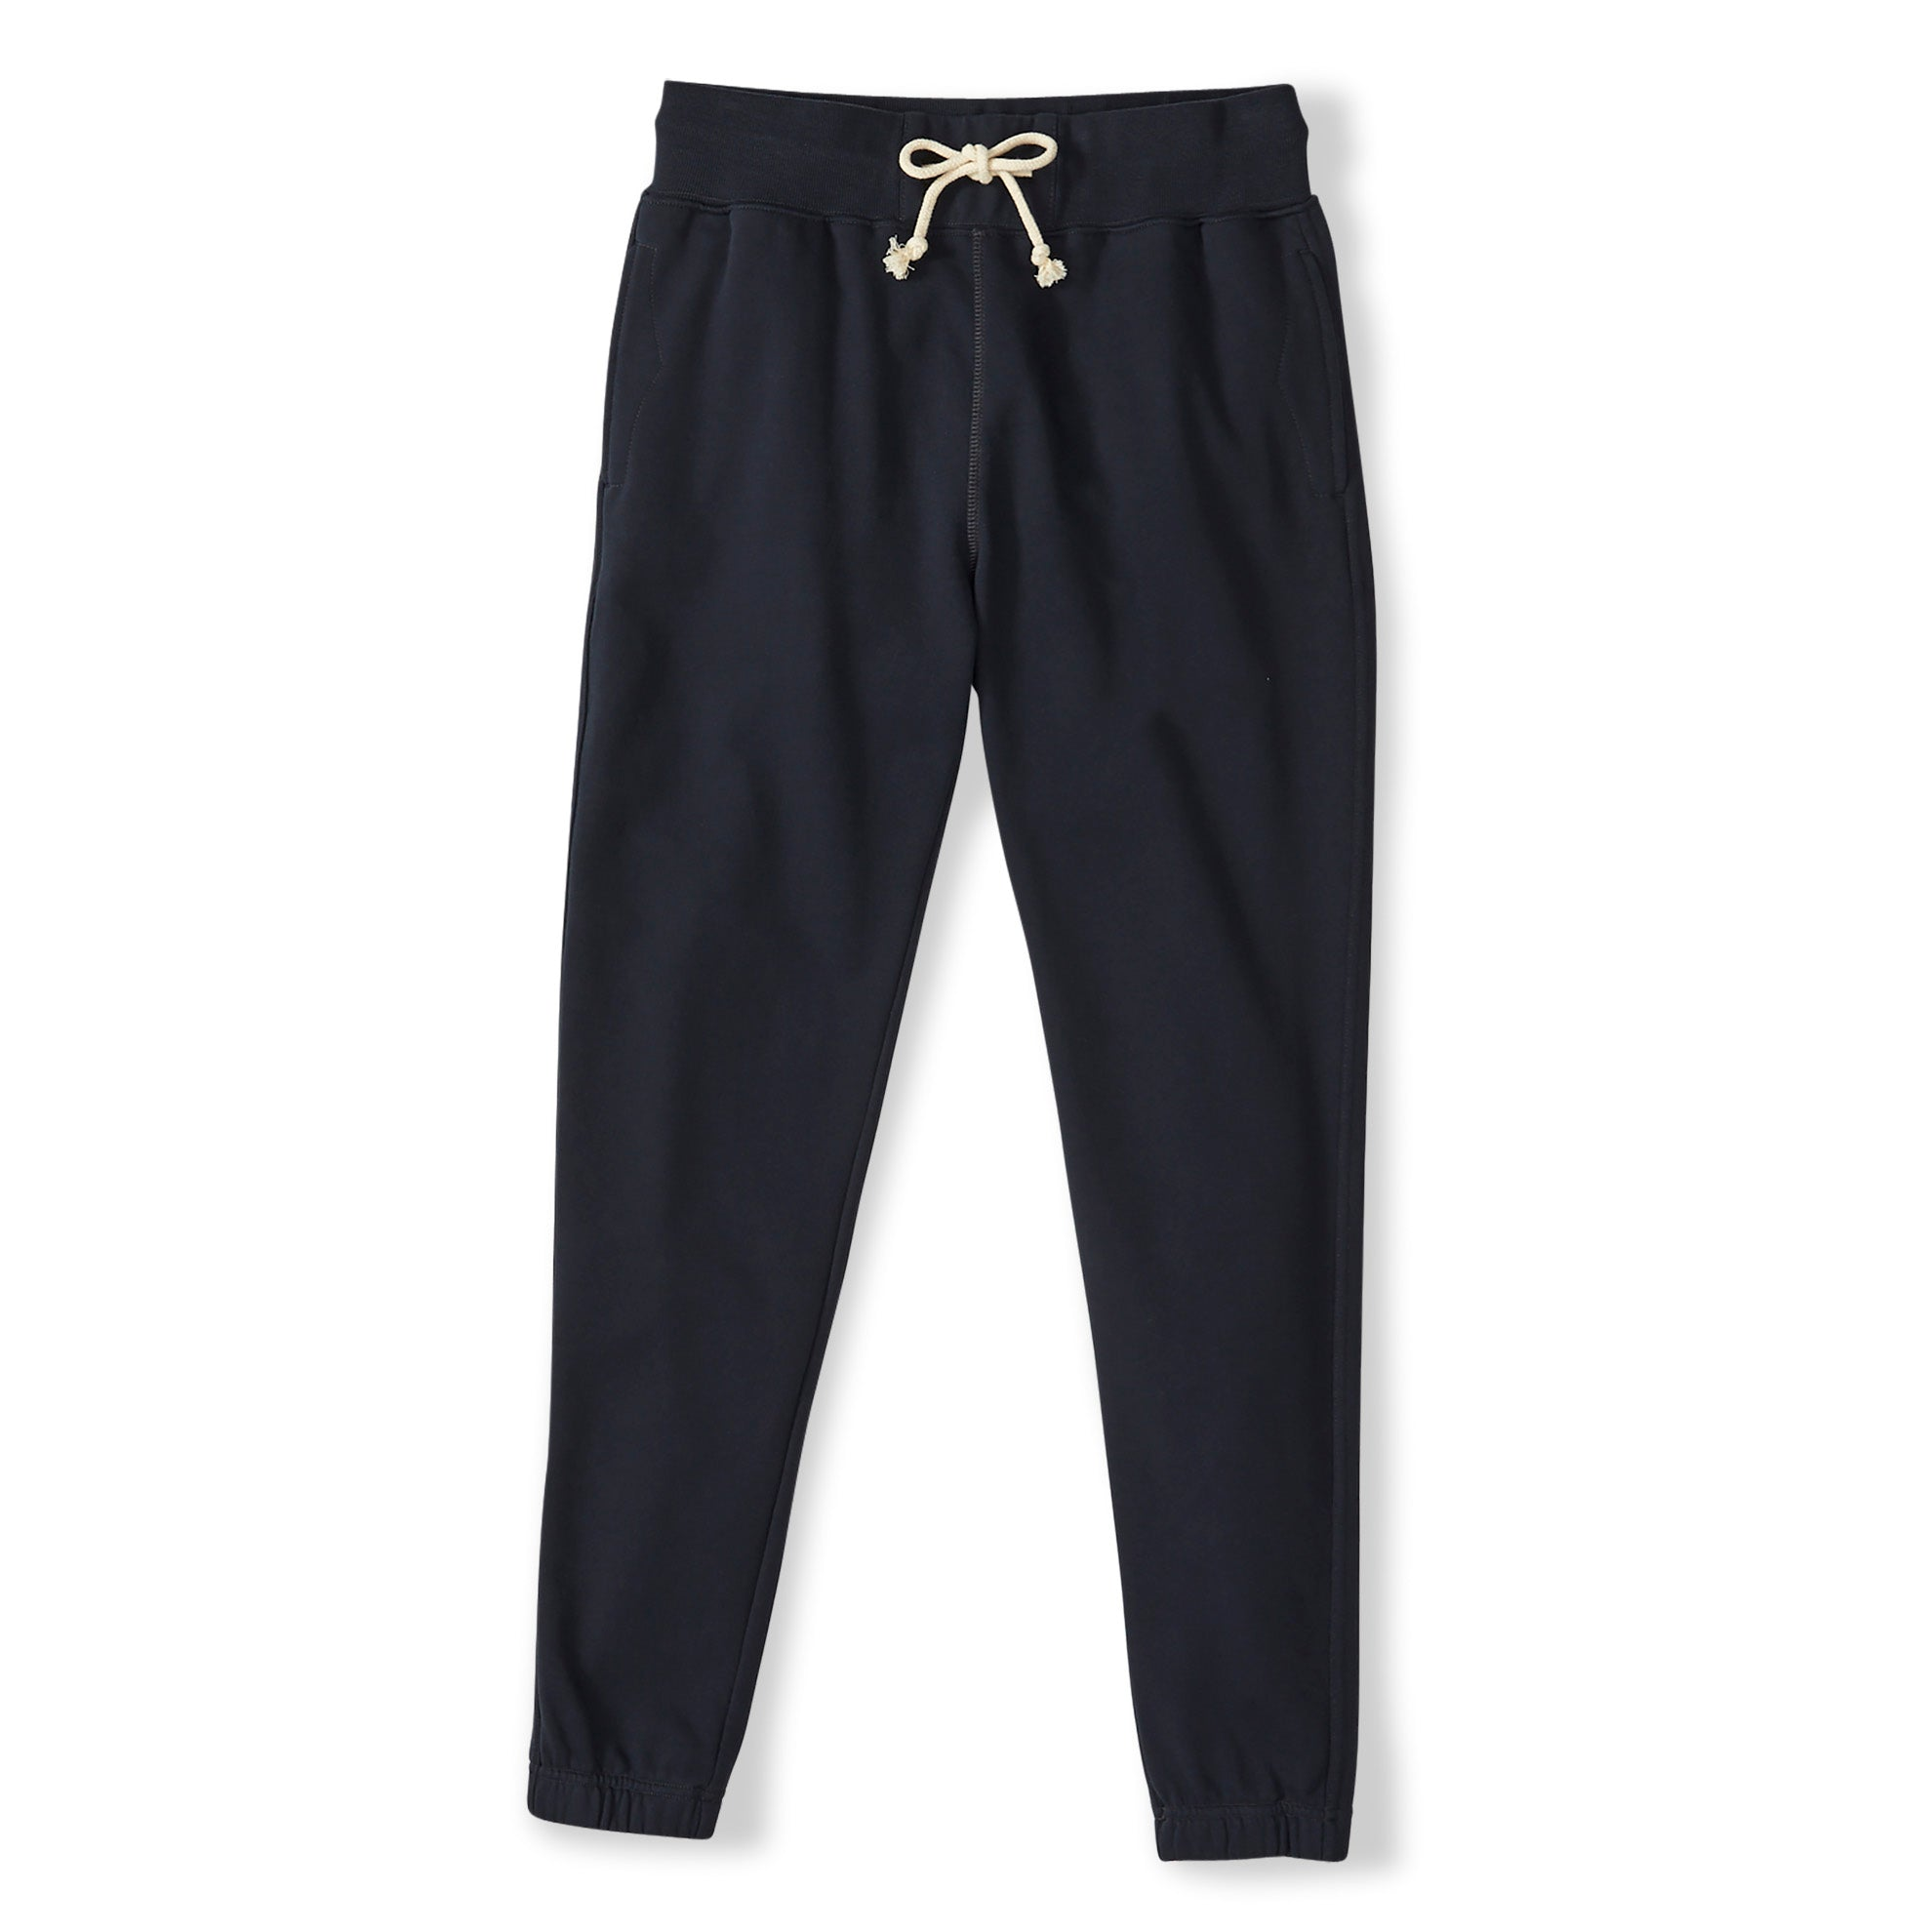 Airman Sweatpants